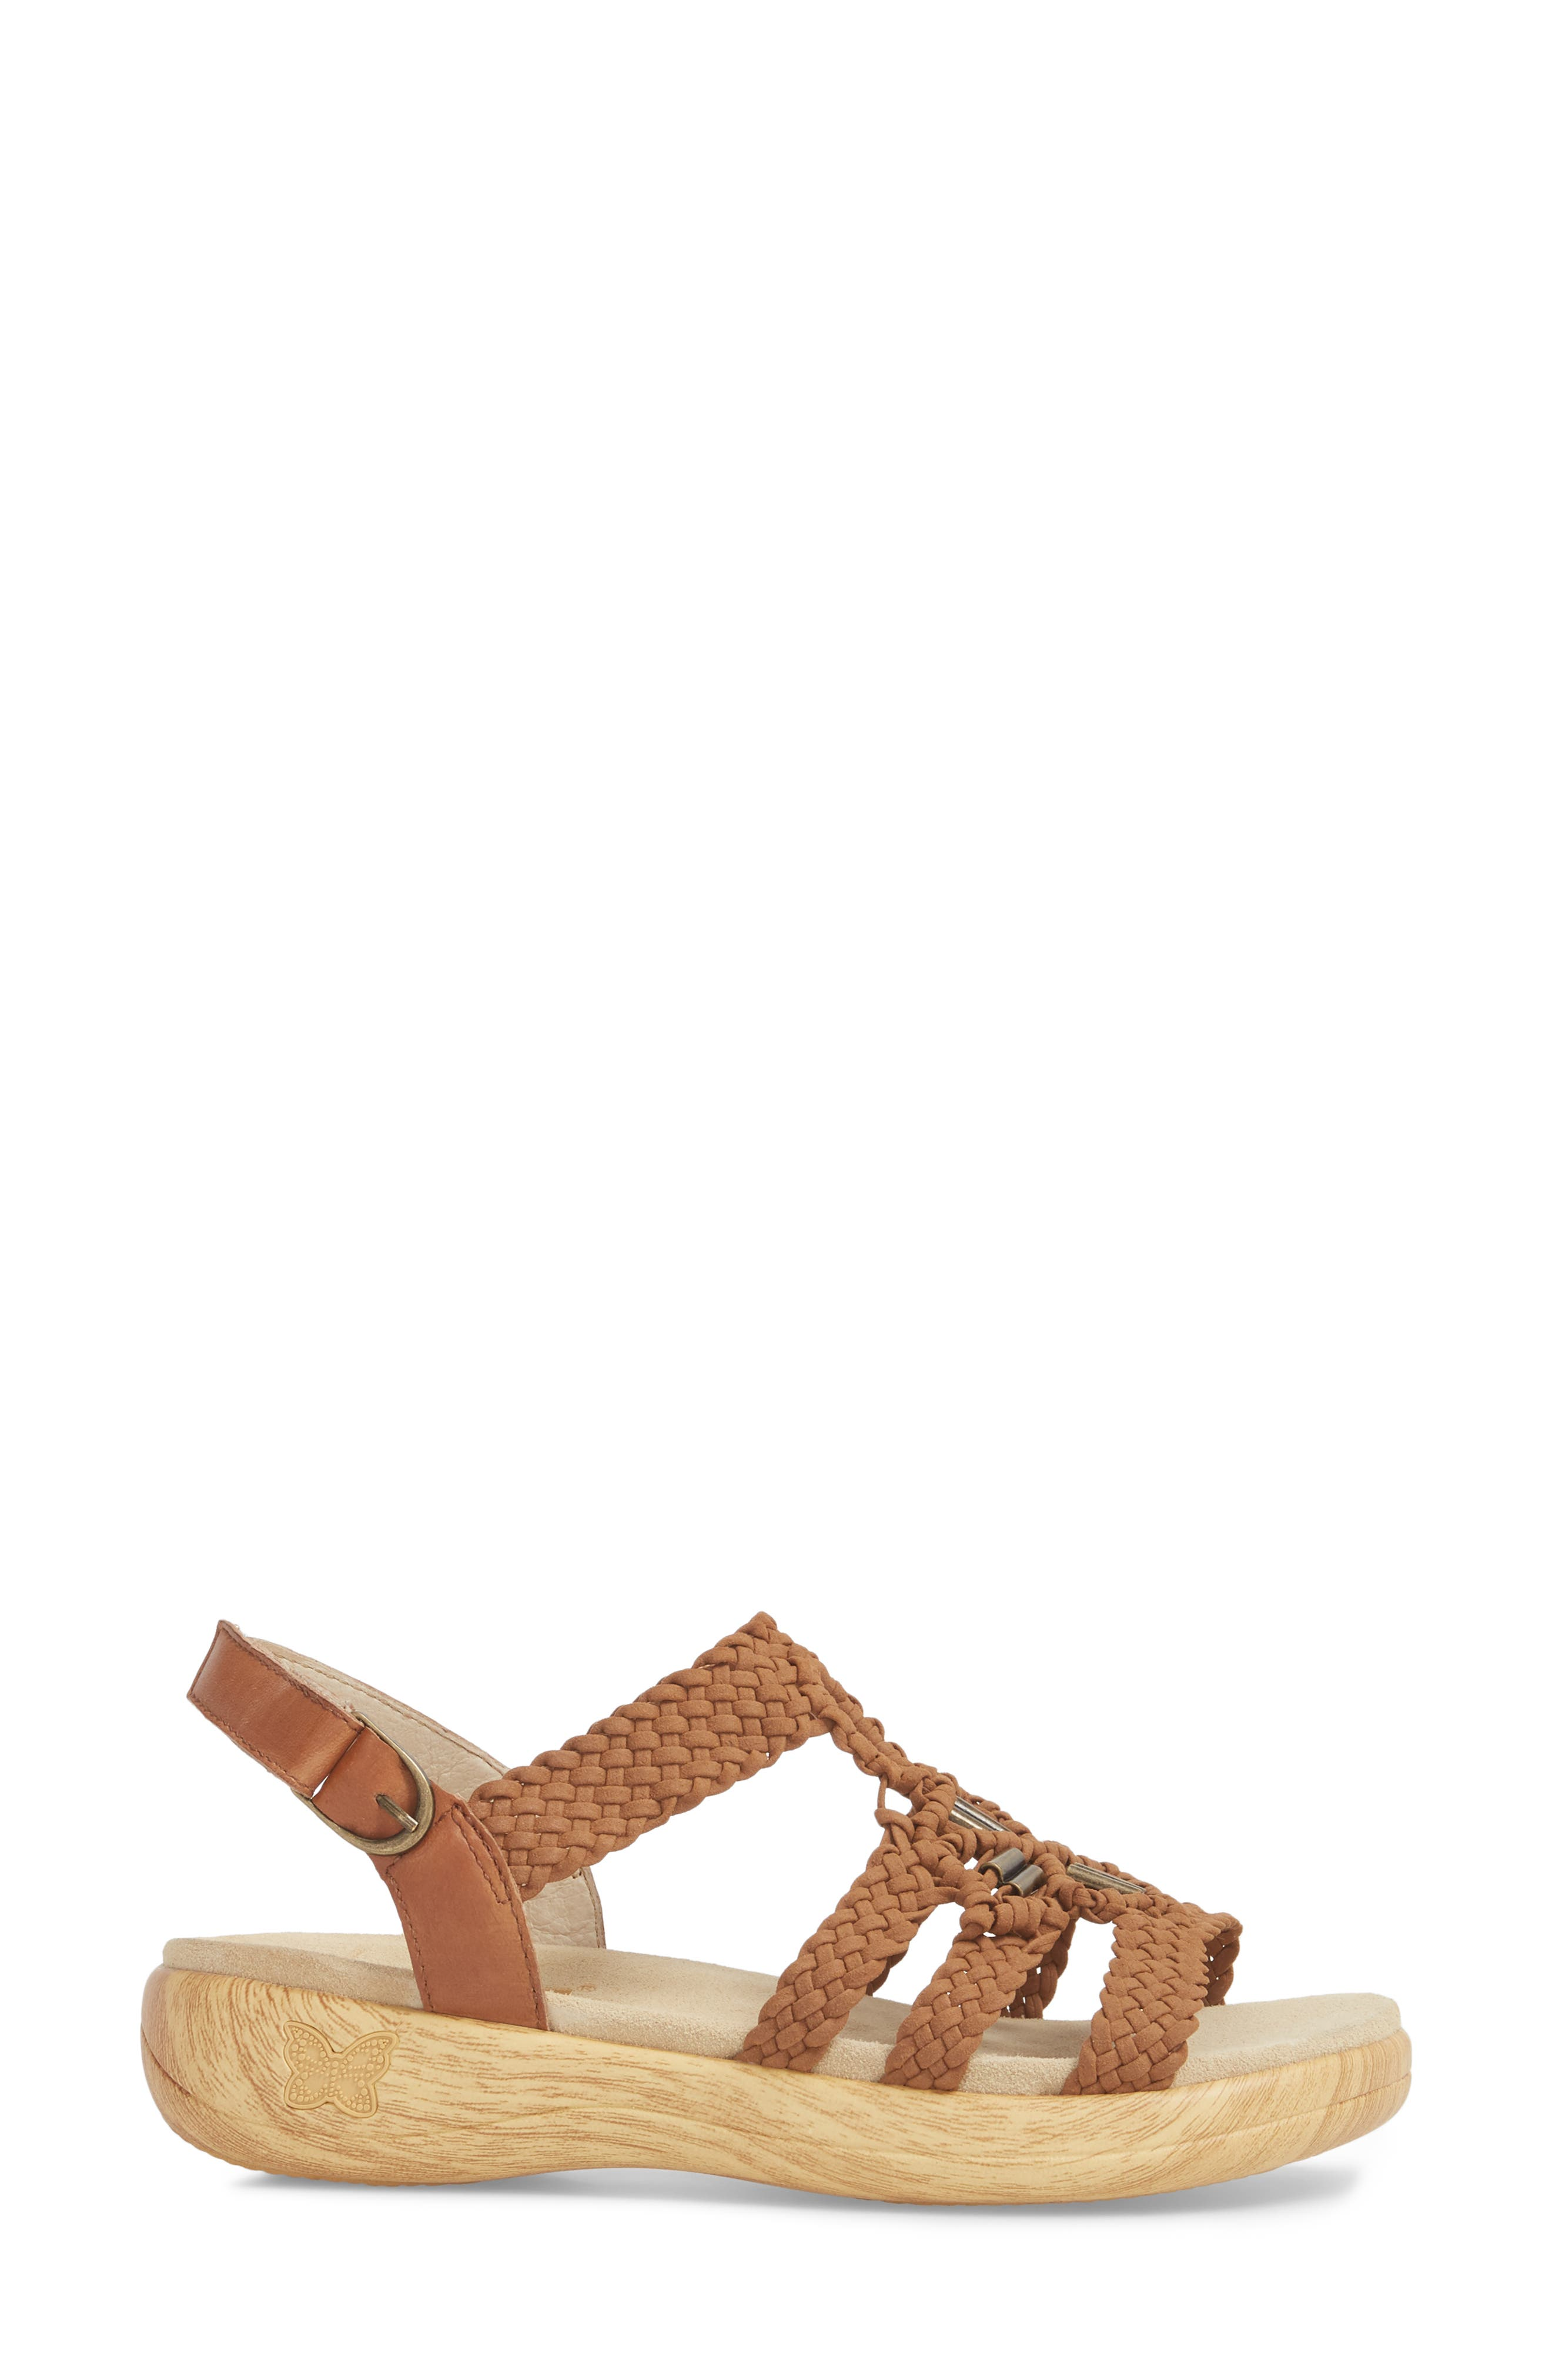 Jena Sandal,                             Alternate thumbnail 9, color,